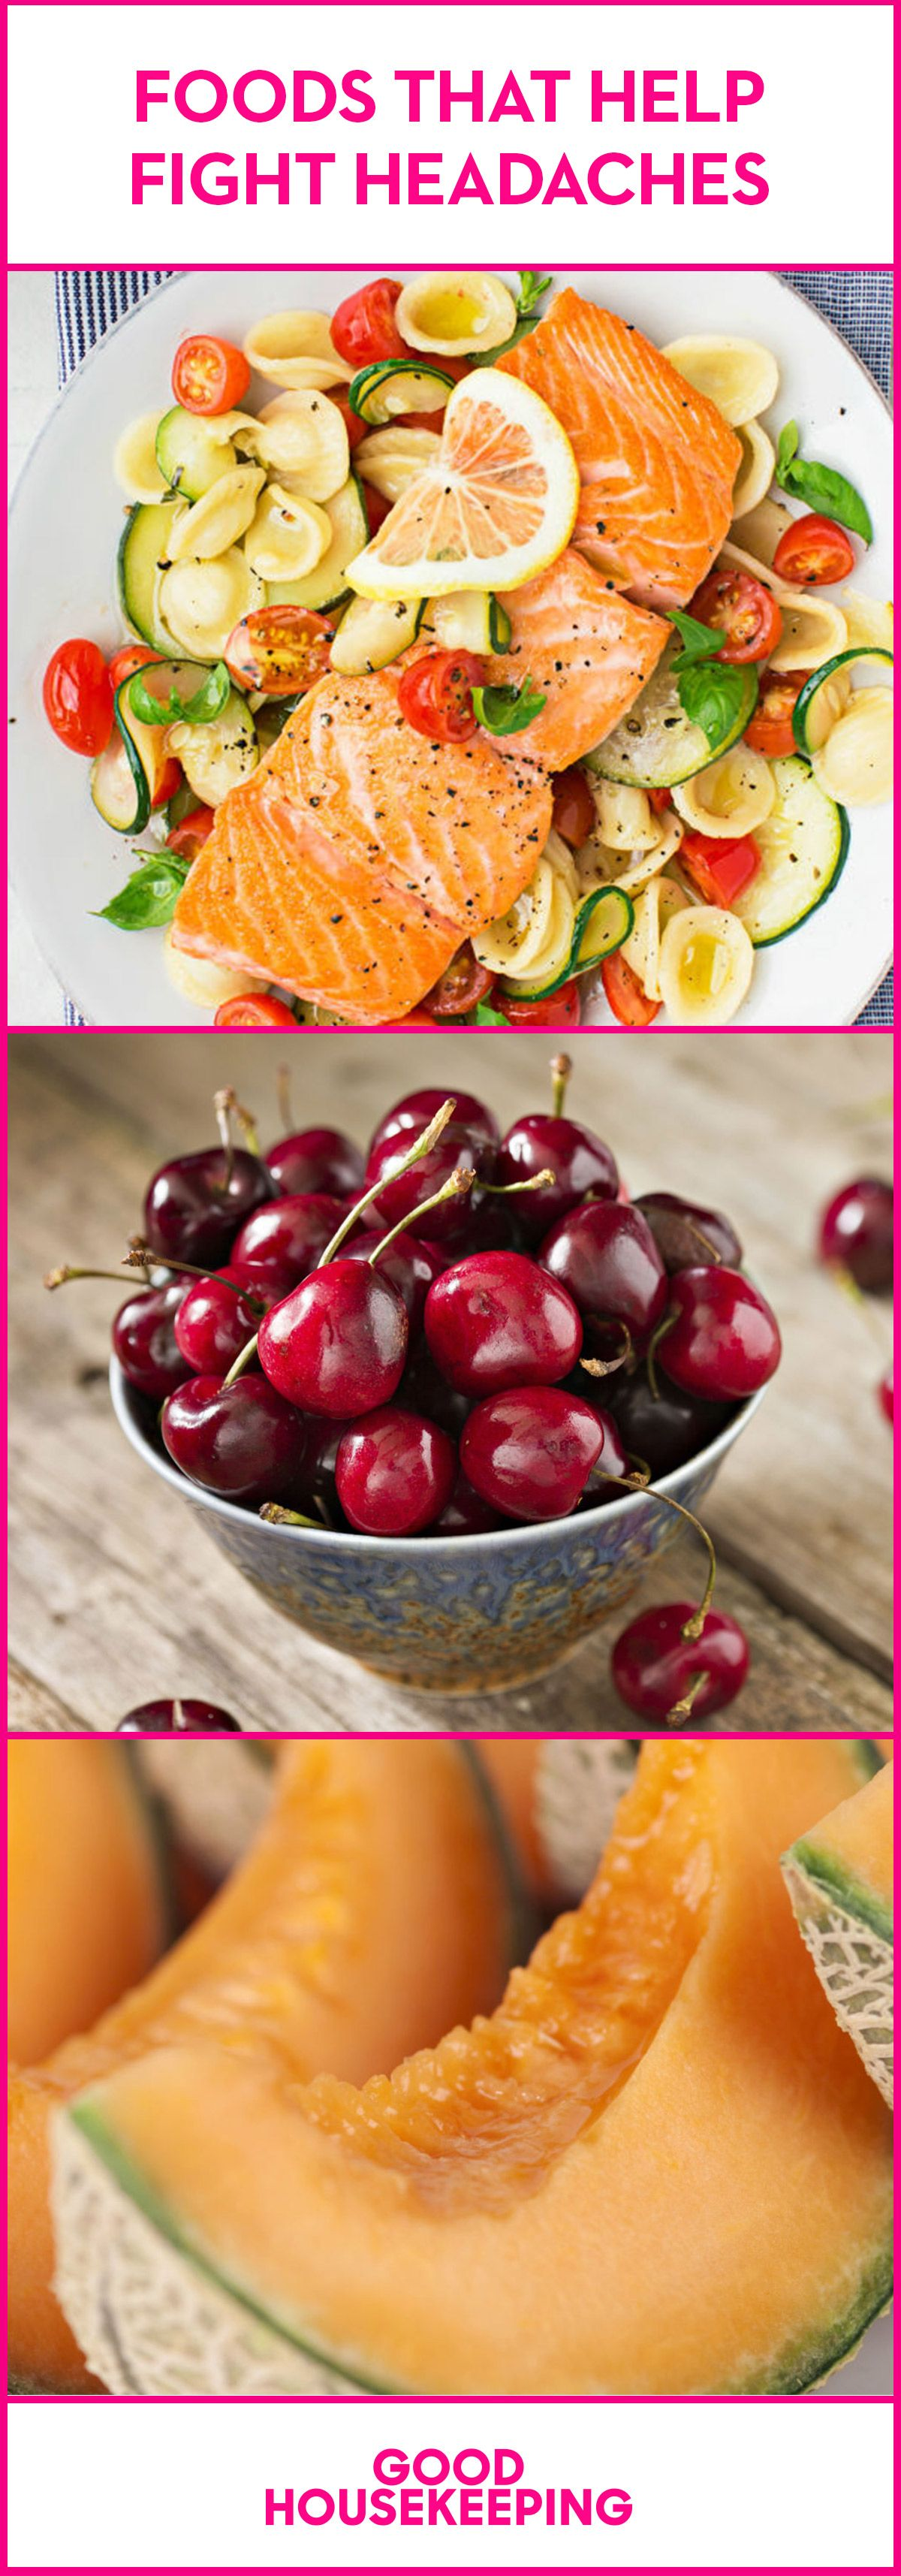 7 foods that help fight headaches food healthy eating